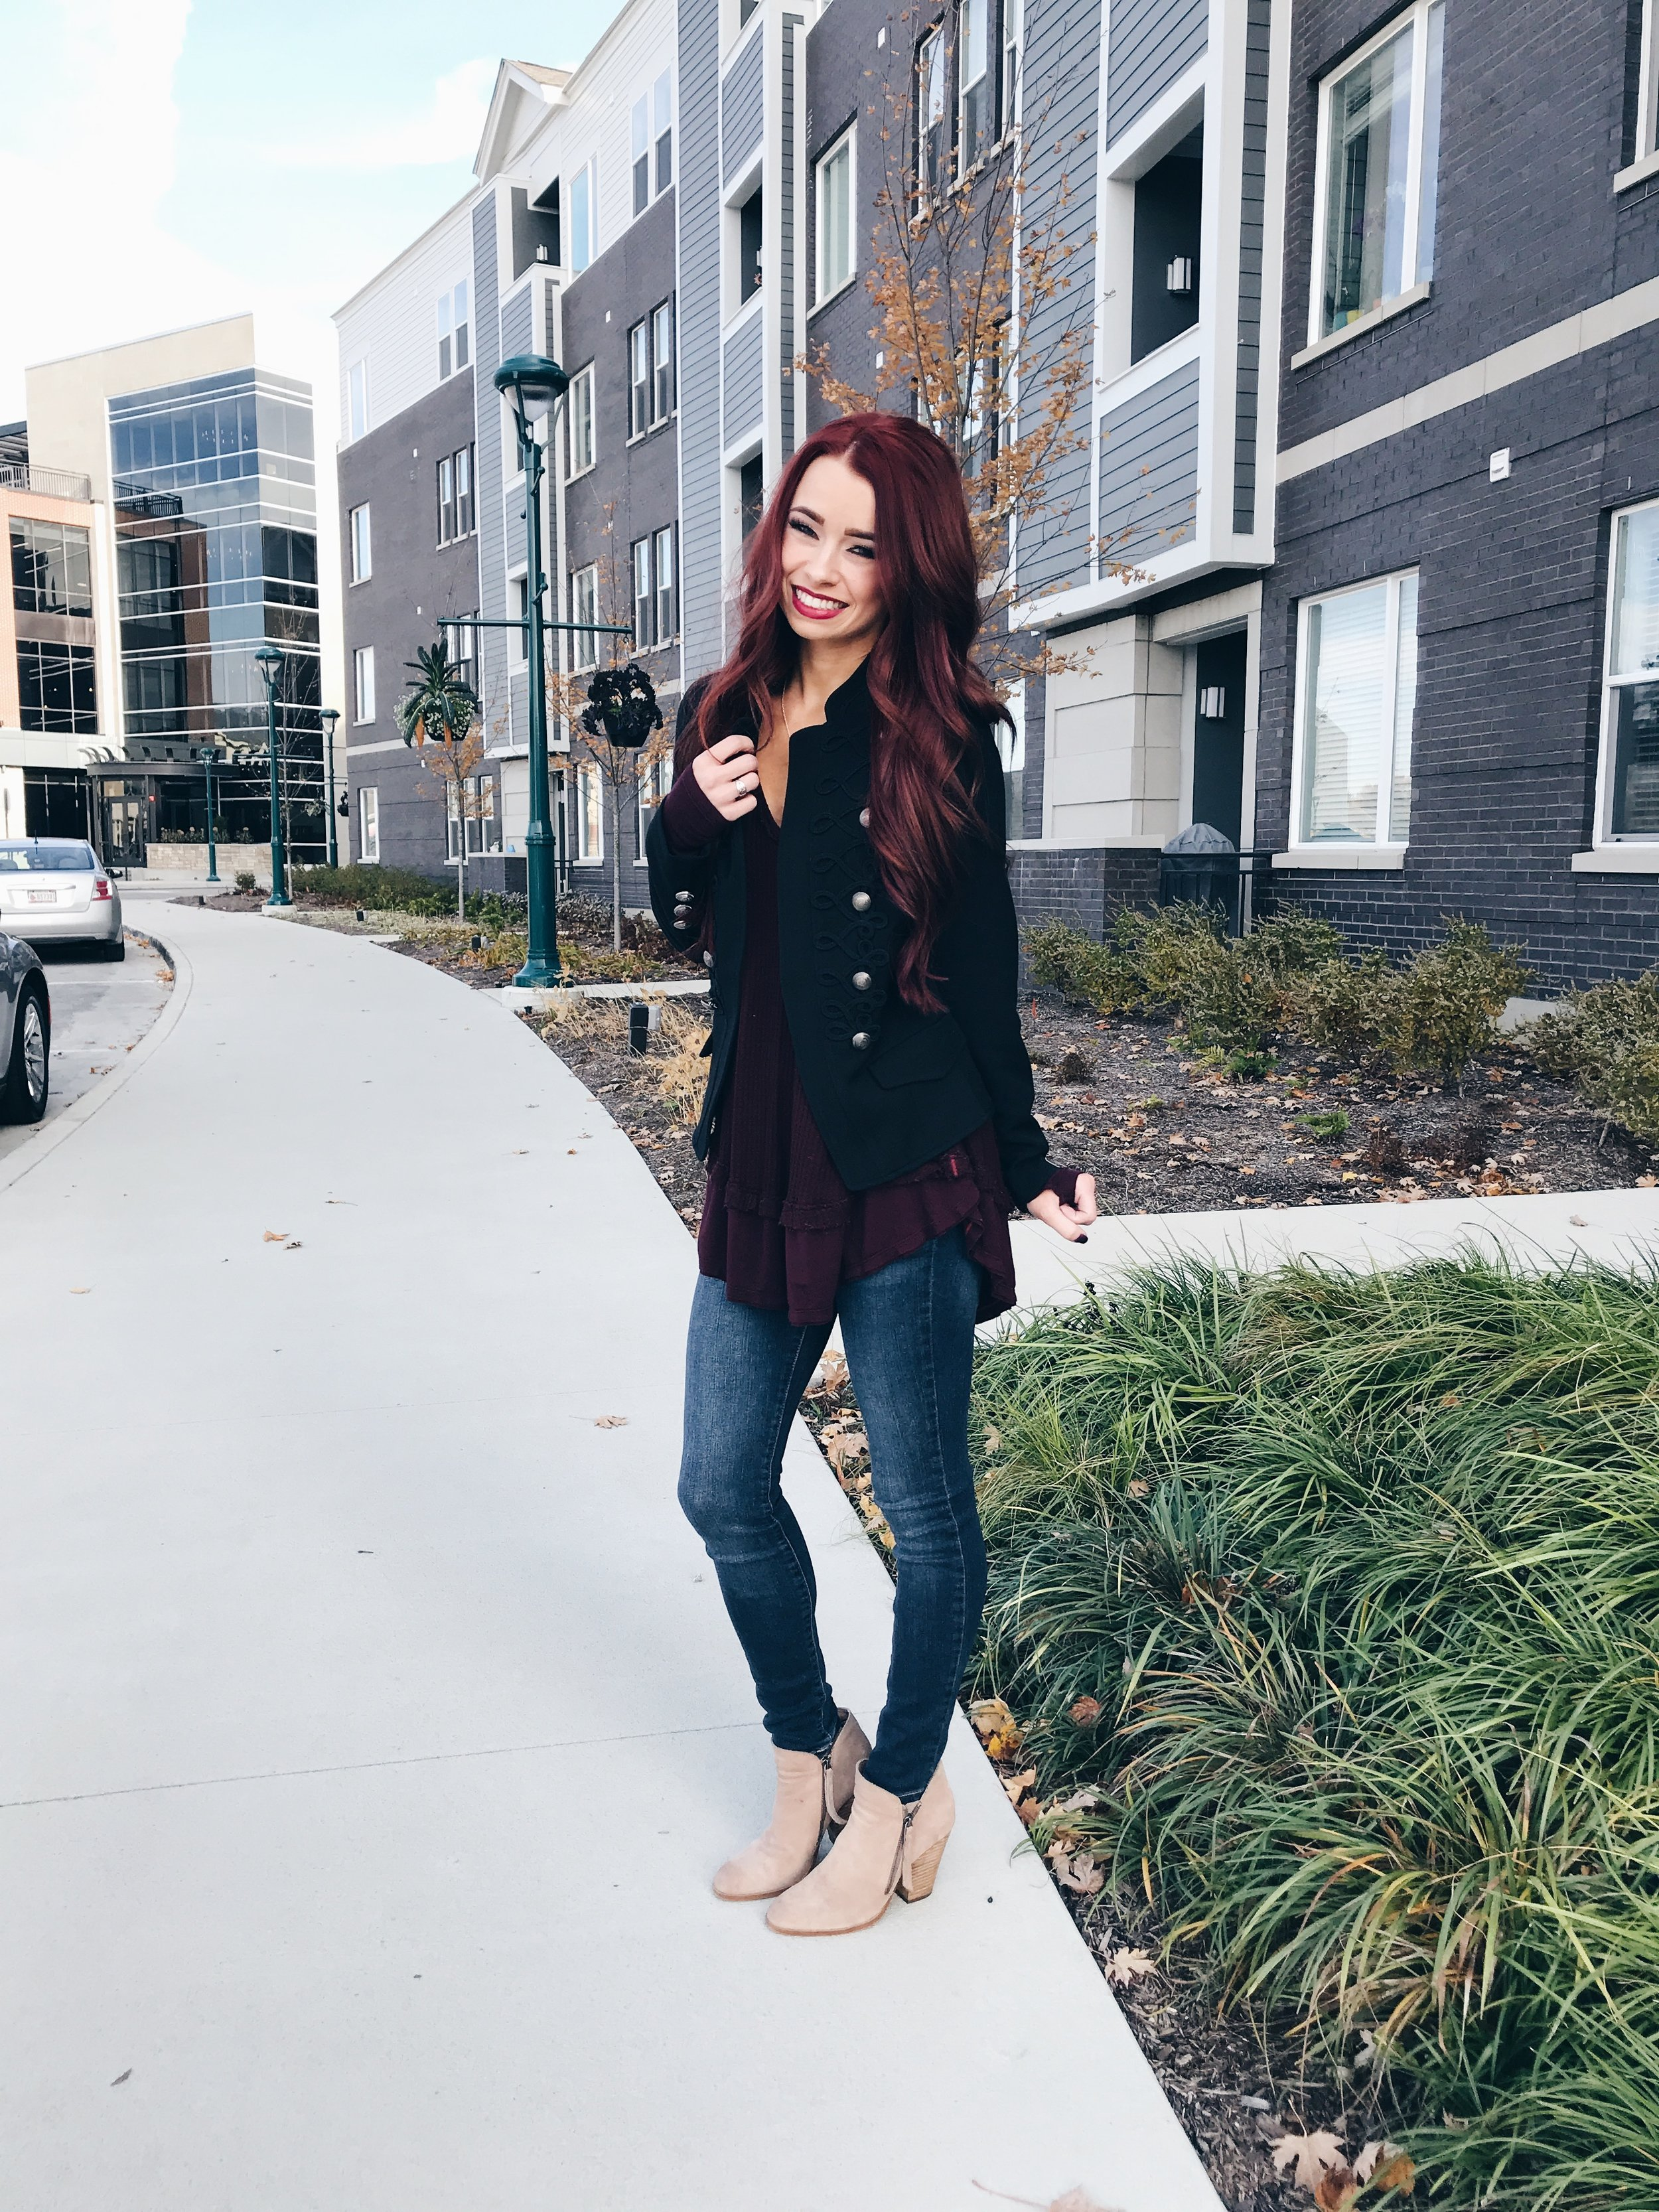 Black Jacket  ||  Burgundy Top  || Striped Top  here ,  here , and  here  ||  White Portofino Top  ||  Jeans  ||  Tan Booties  ||  Burgundy Booties  ||  Black Boots  ||  Blush Mules  (fave right now) ||